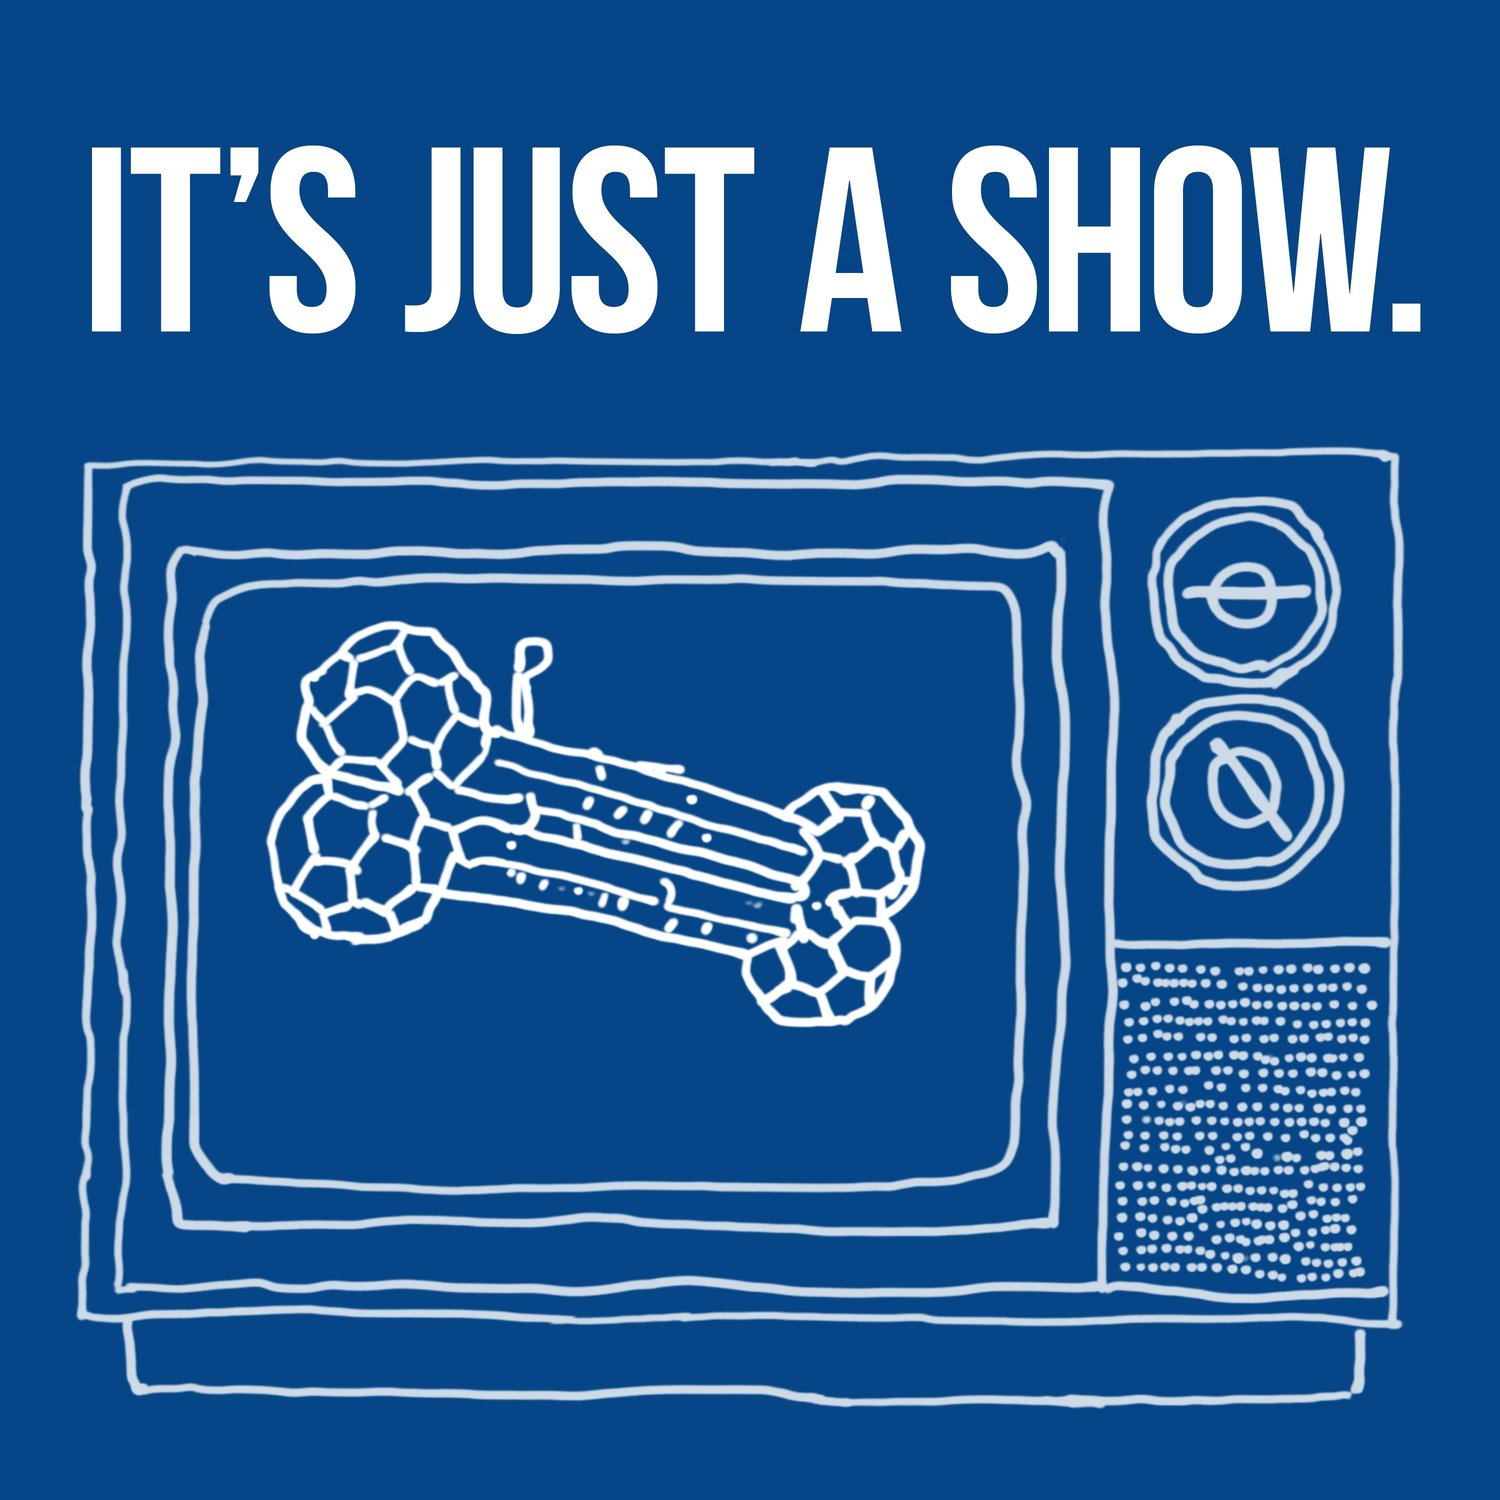 It's Just A Show.